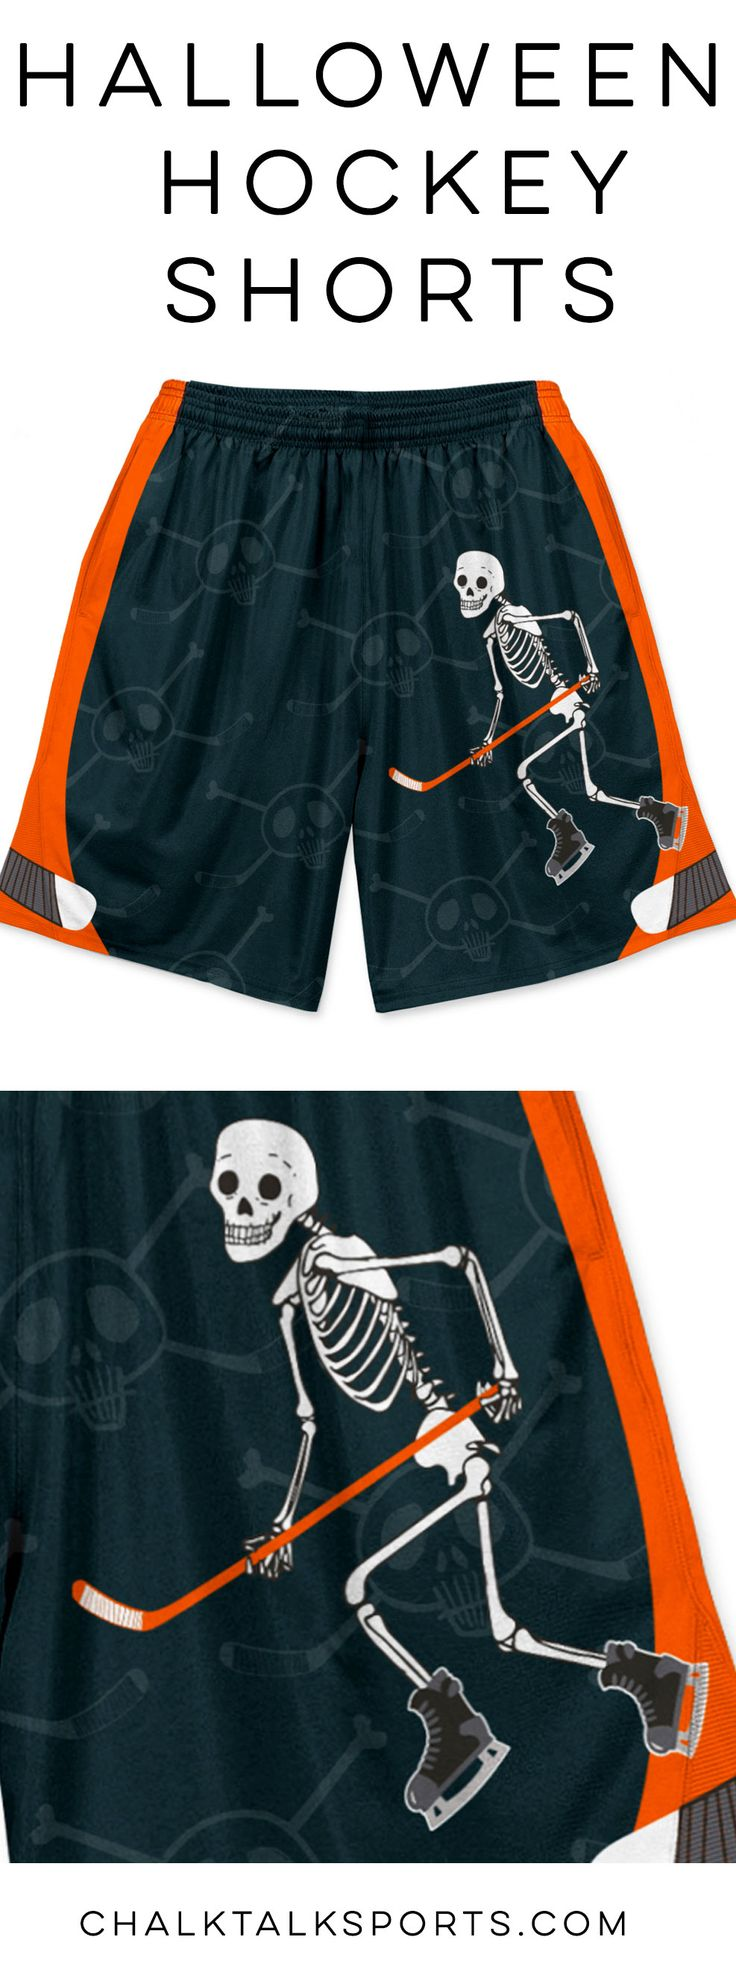 Limited Edition Hockey Halloween Shorts! Our Mr Bones Hockey shorts feature our hockey player skeleton design on the front left leg, a skull and crossed hockey sticks throughout and hockey sticks down the side. Each pair of hockey shorts are designed with double layered moisture-wicking material and side pockets.